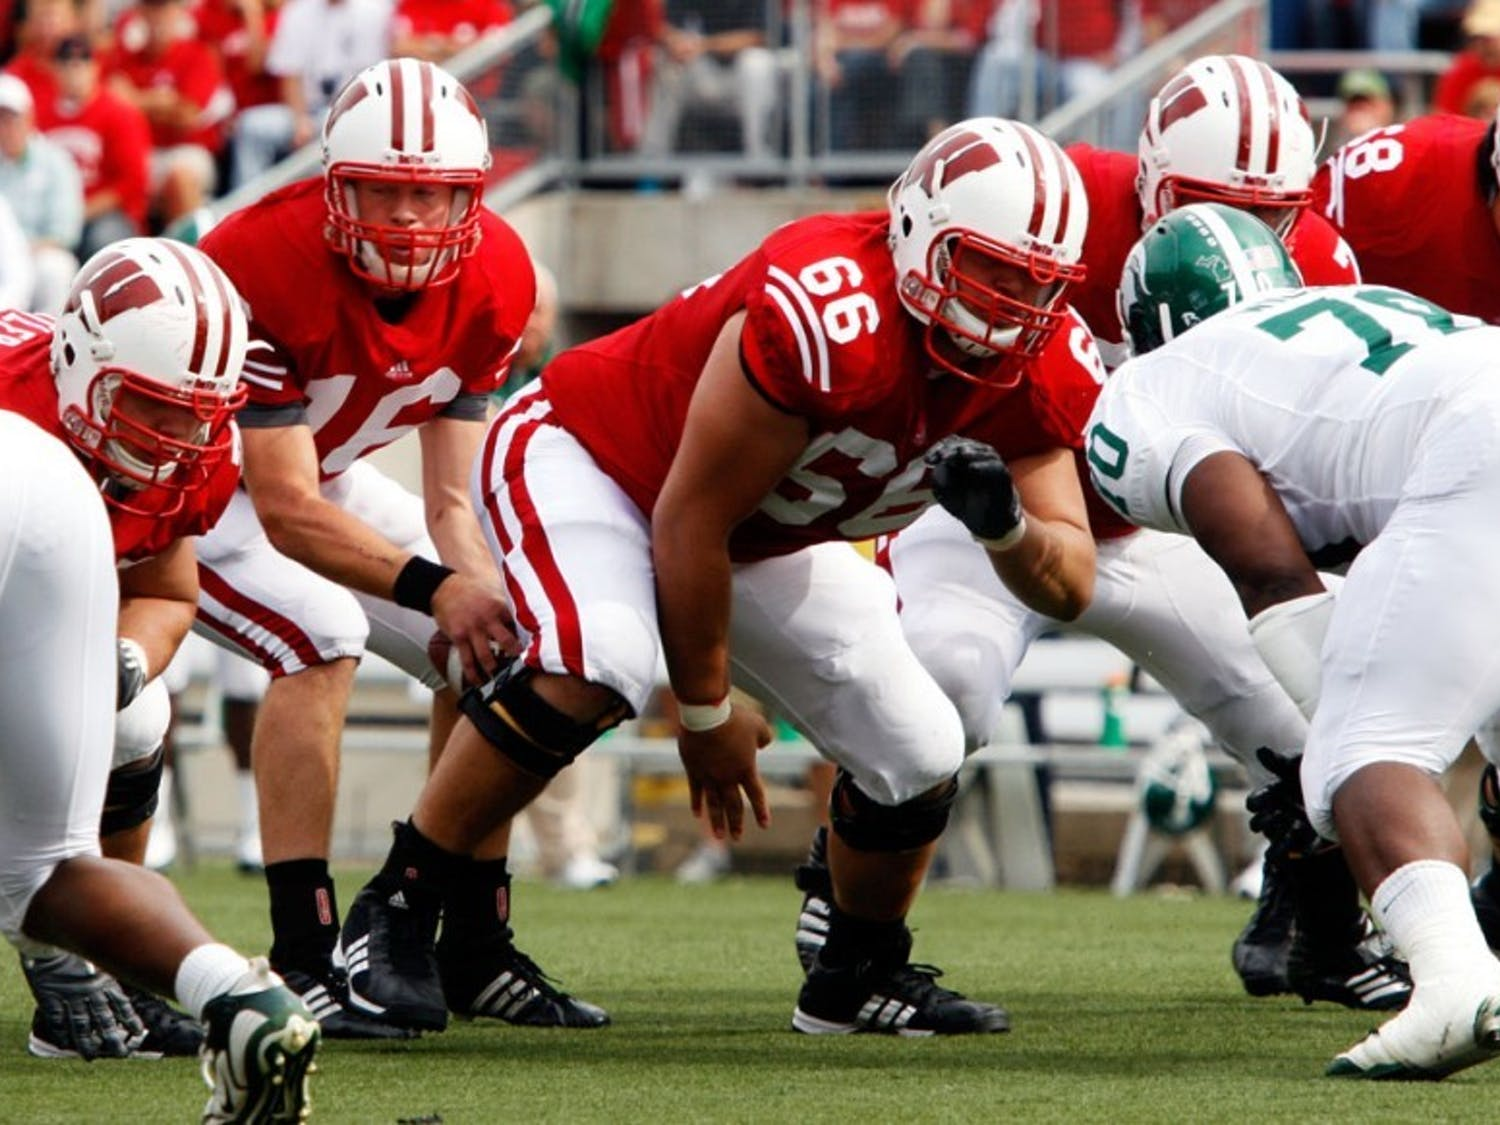 Early success fueled by strong offensive line